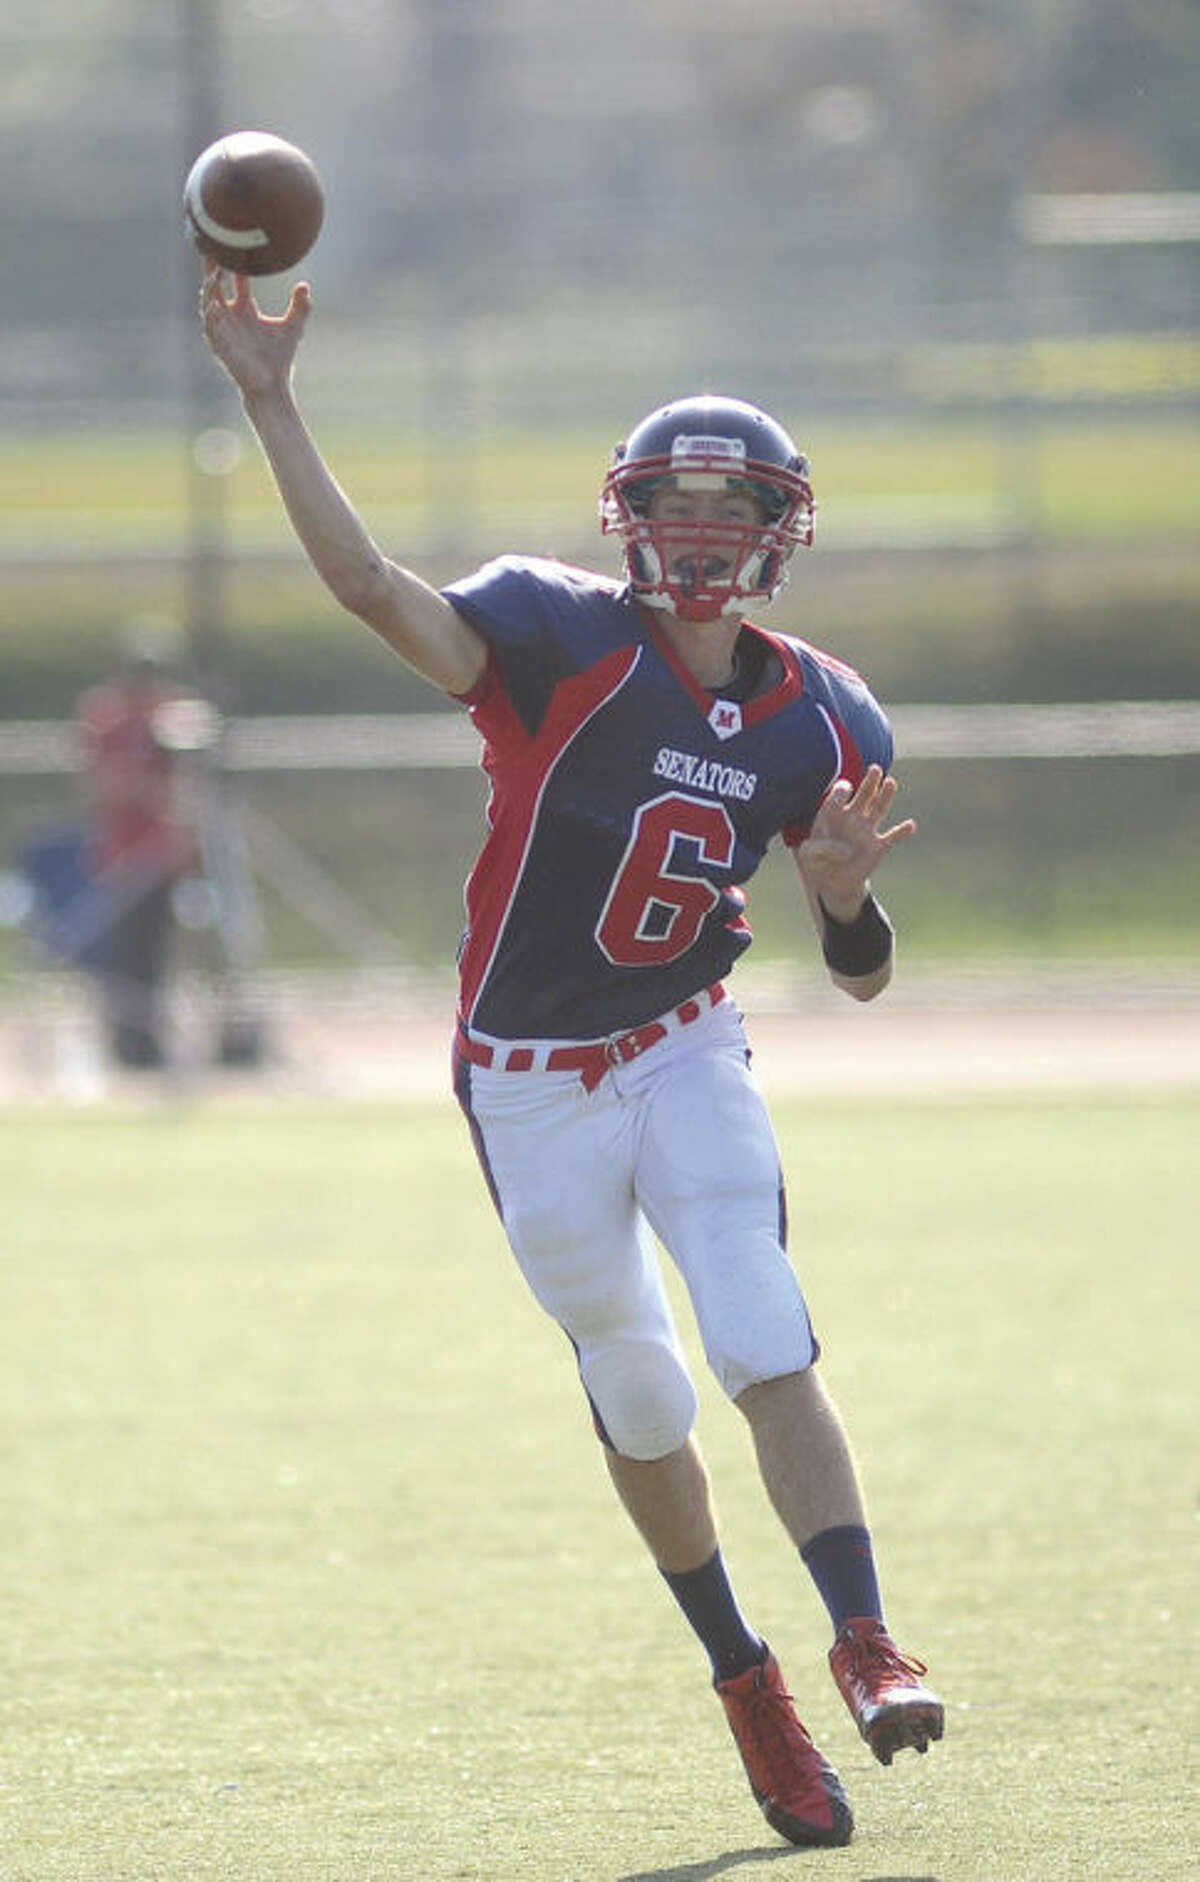 Hour photo/John Nash Brien McMahon quarterback Matt Downey fires a pass up field during Saturday's game at Casagrande Field in Norwalk. McMahon defeated Westhill 21-15.